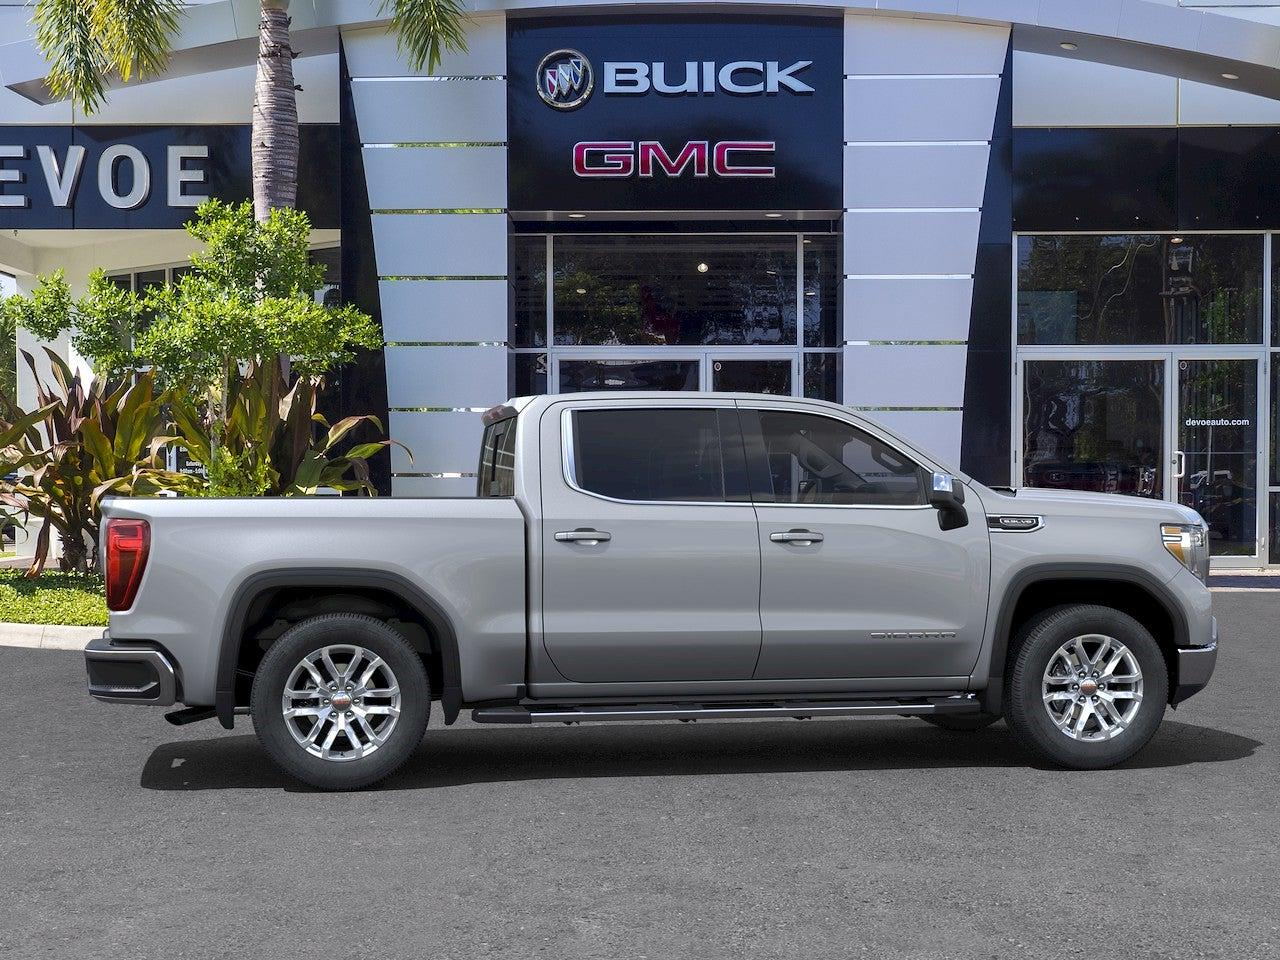 2021 GMC Sierra 1500 Crew Cab 4x2, Pickup #T21272 - photo 8